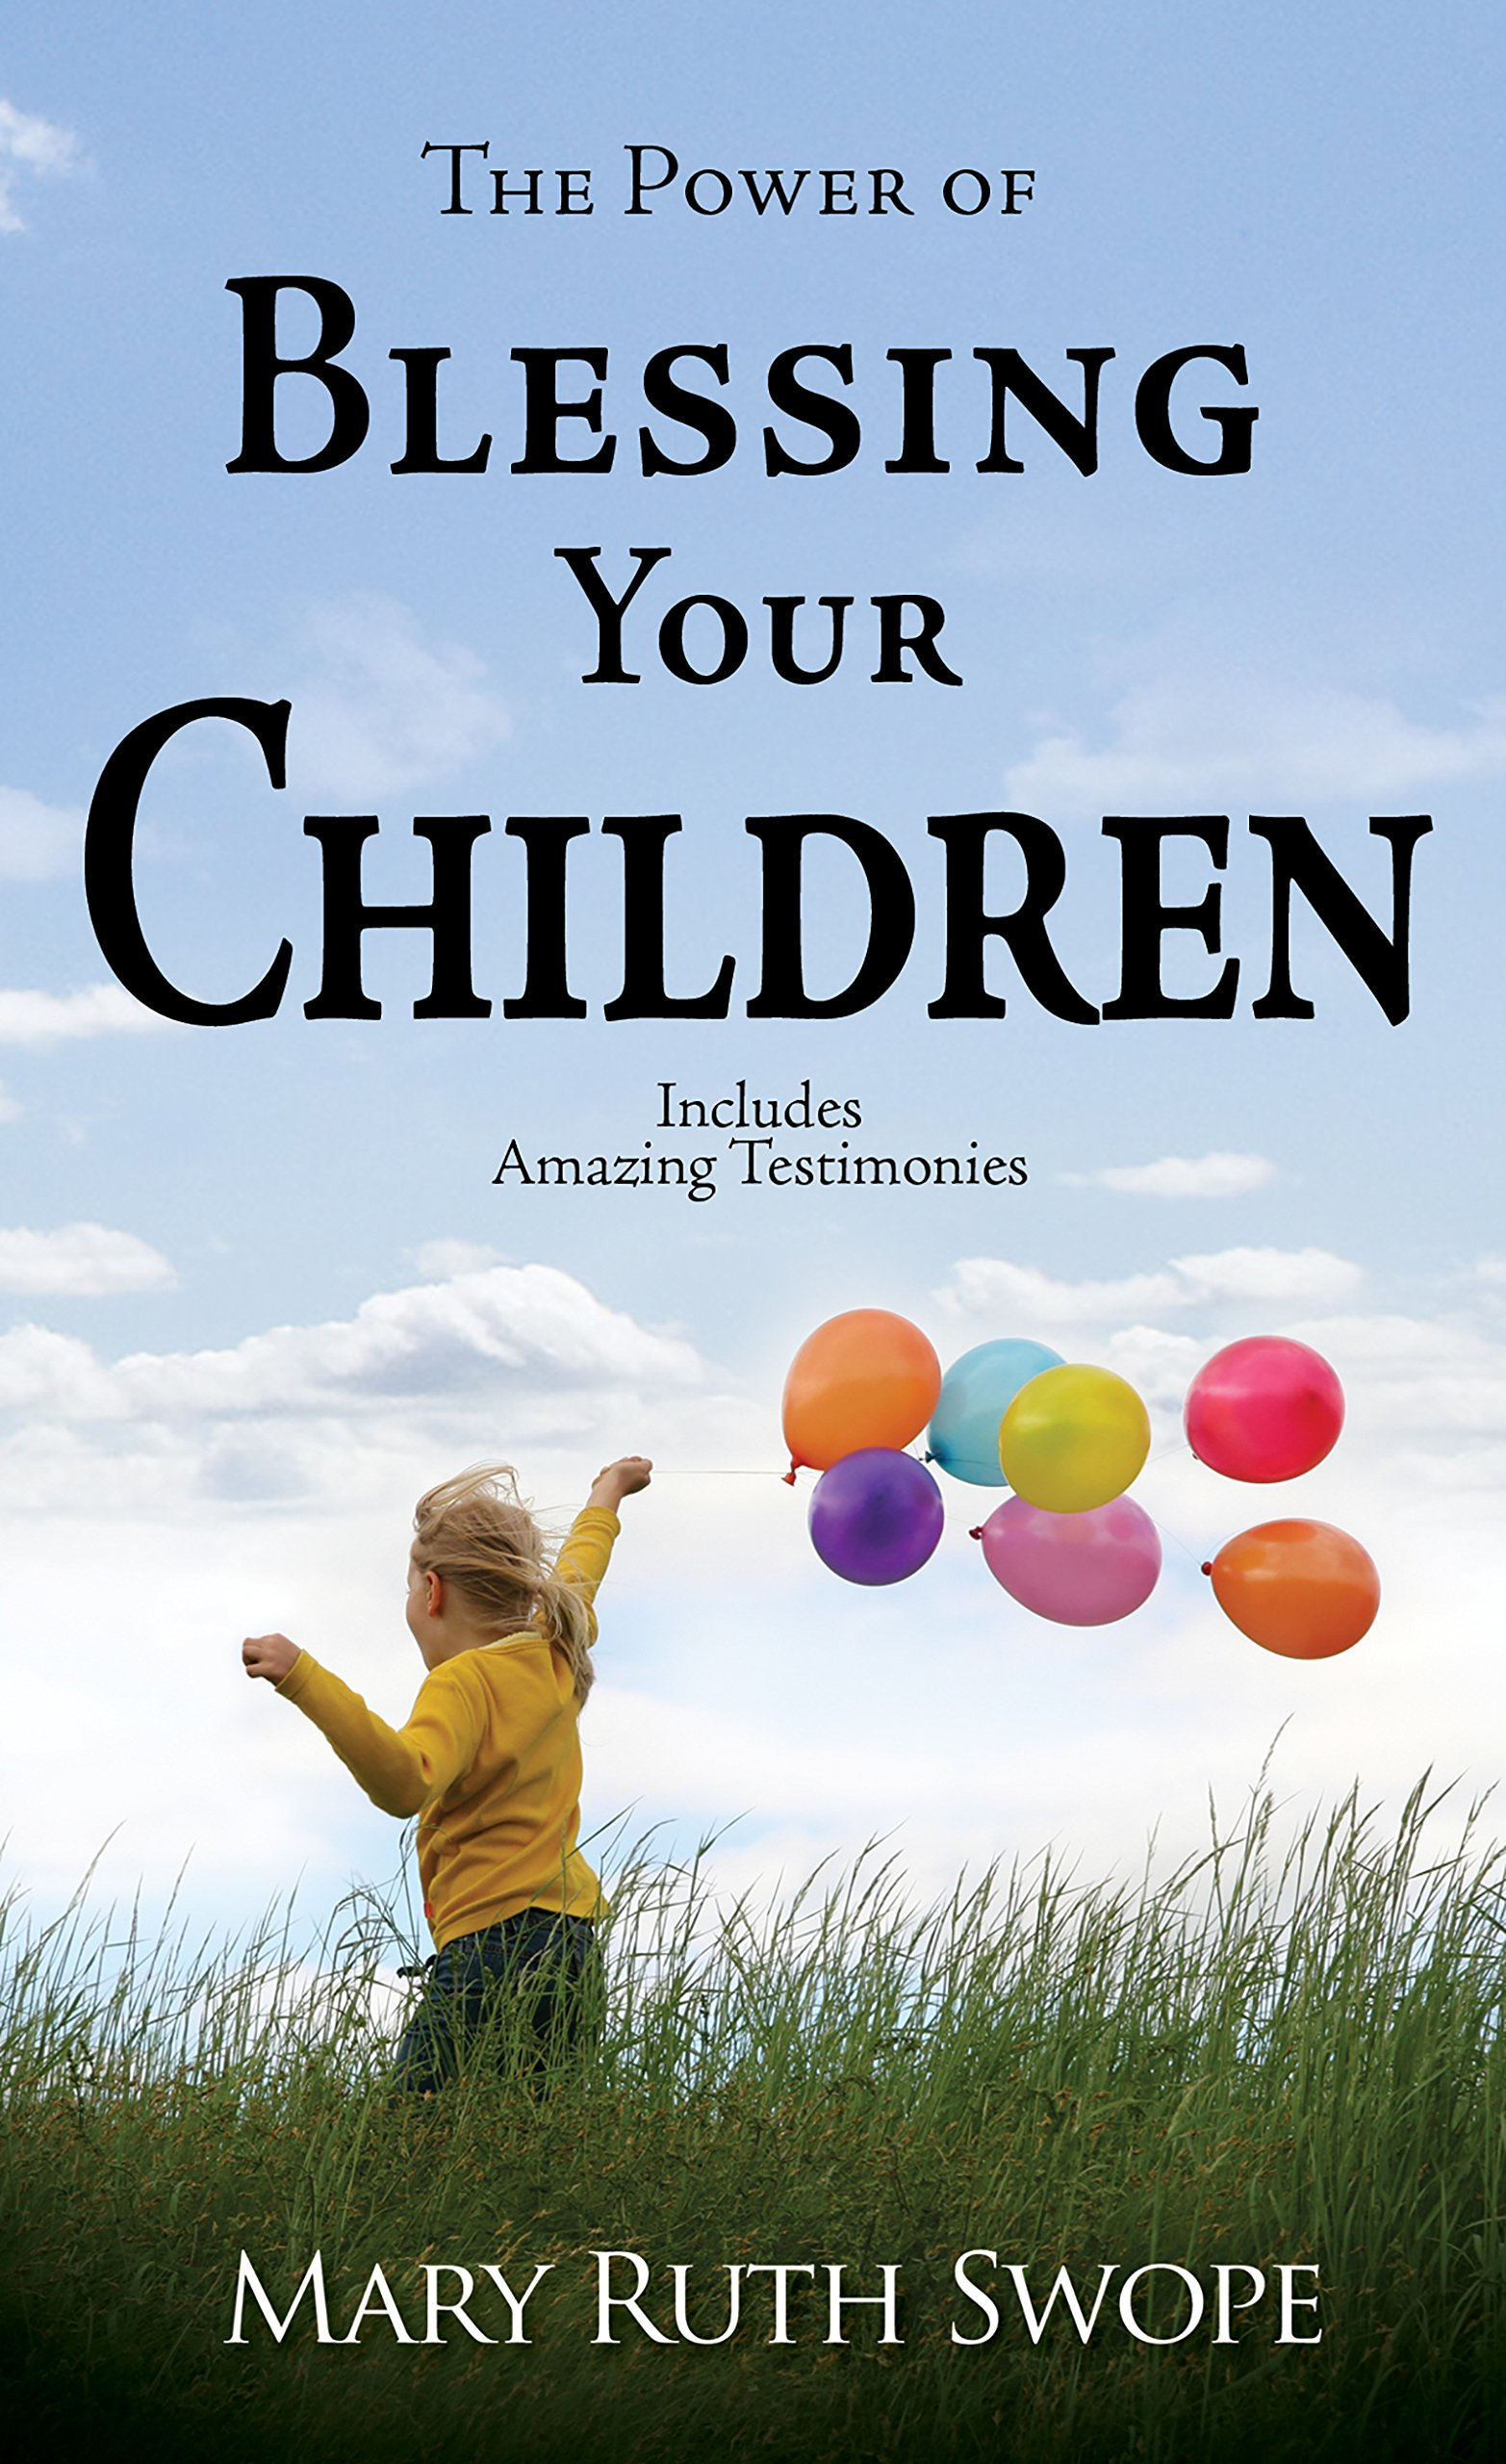 The Power of Blessing Your Children: Mary Ruth Swope M D